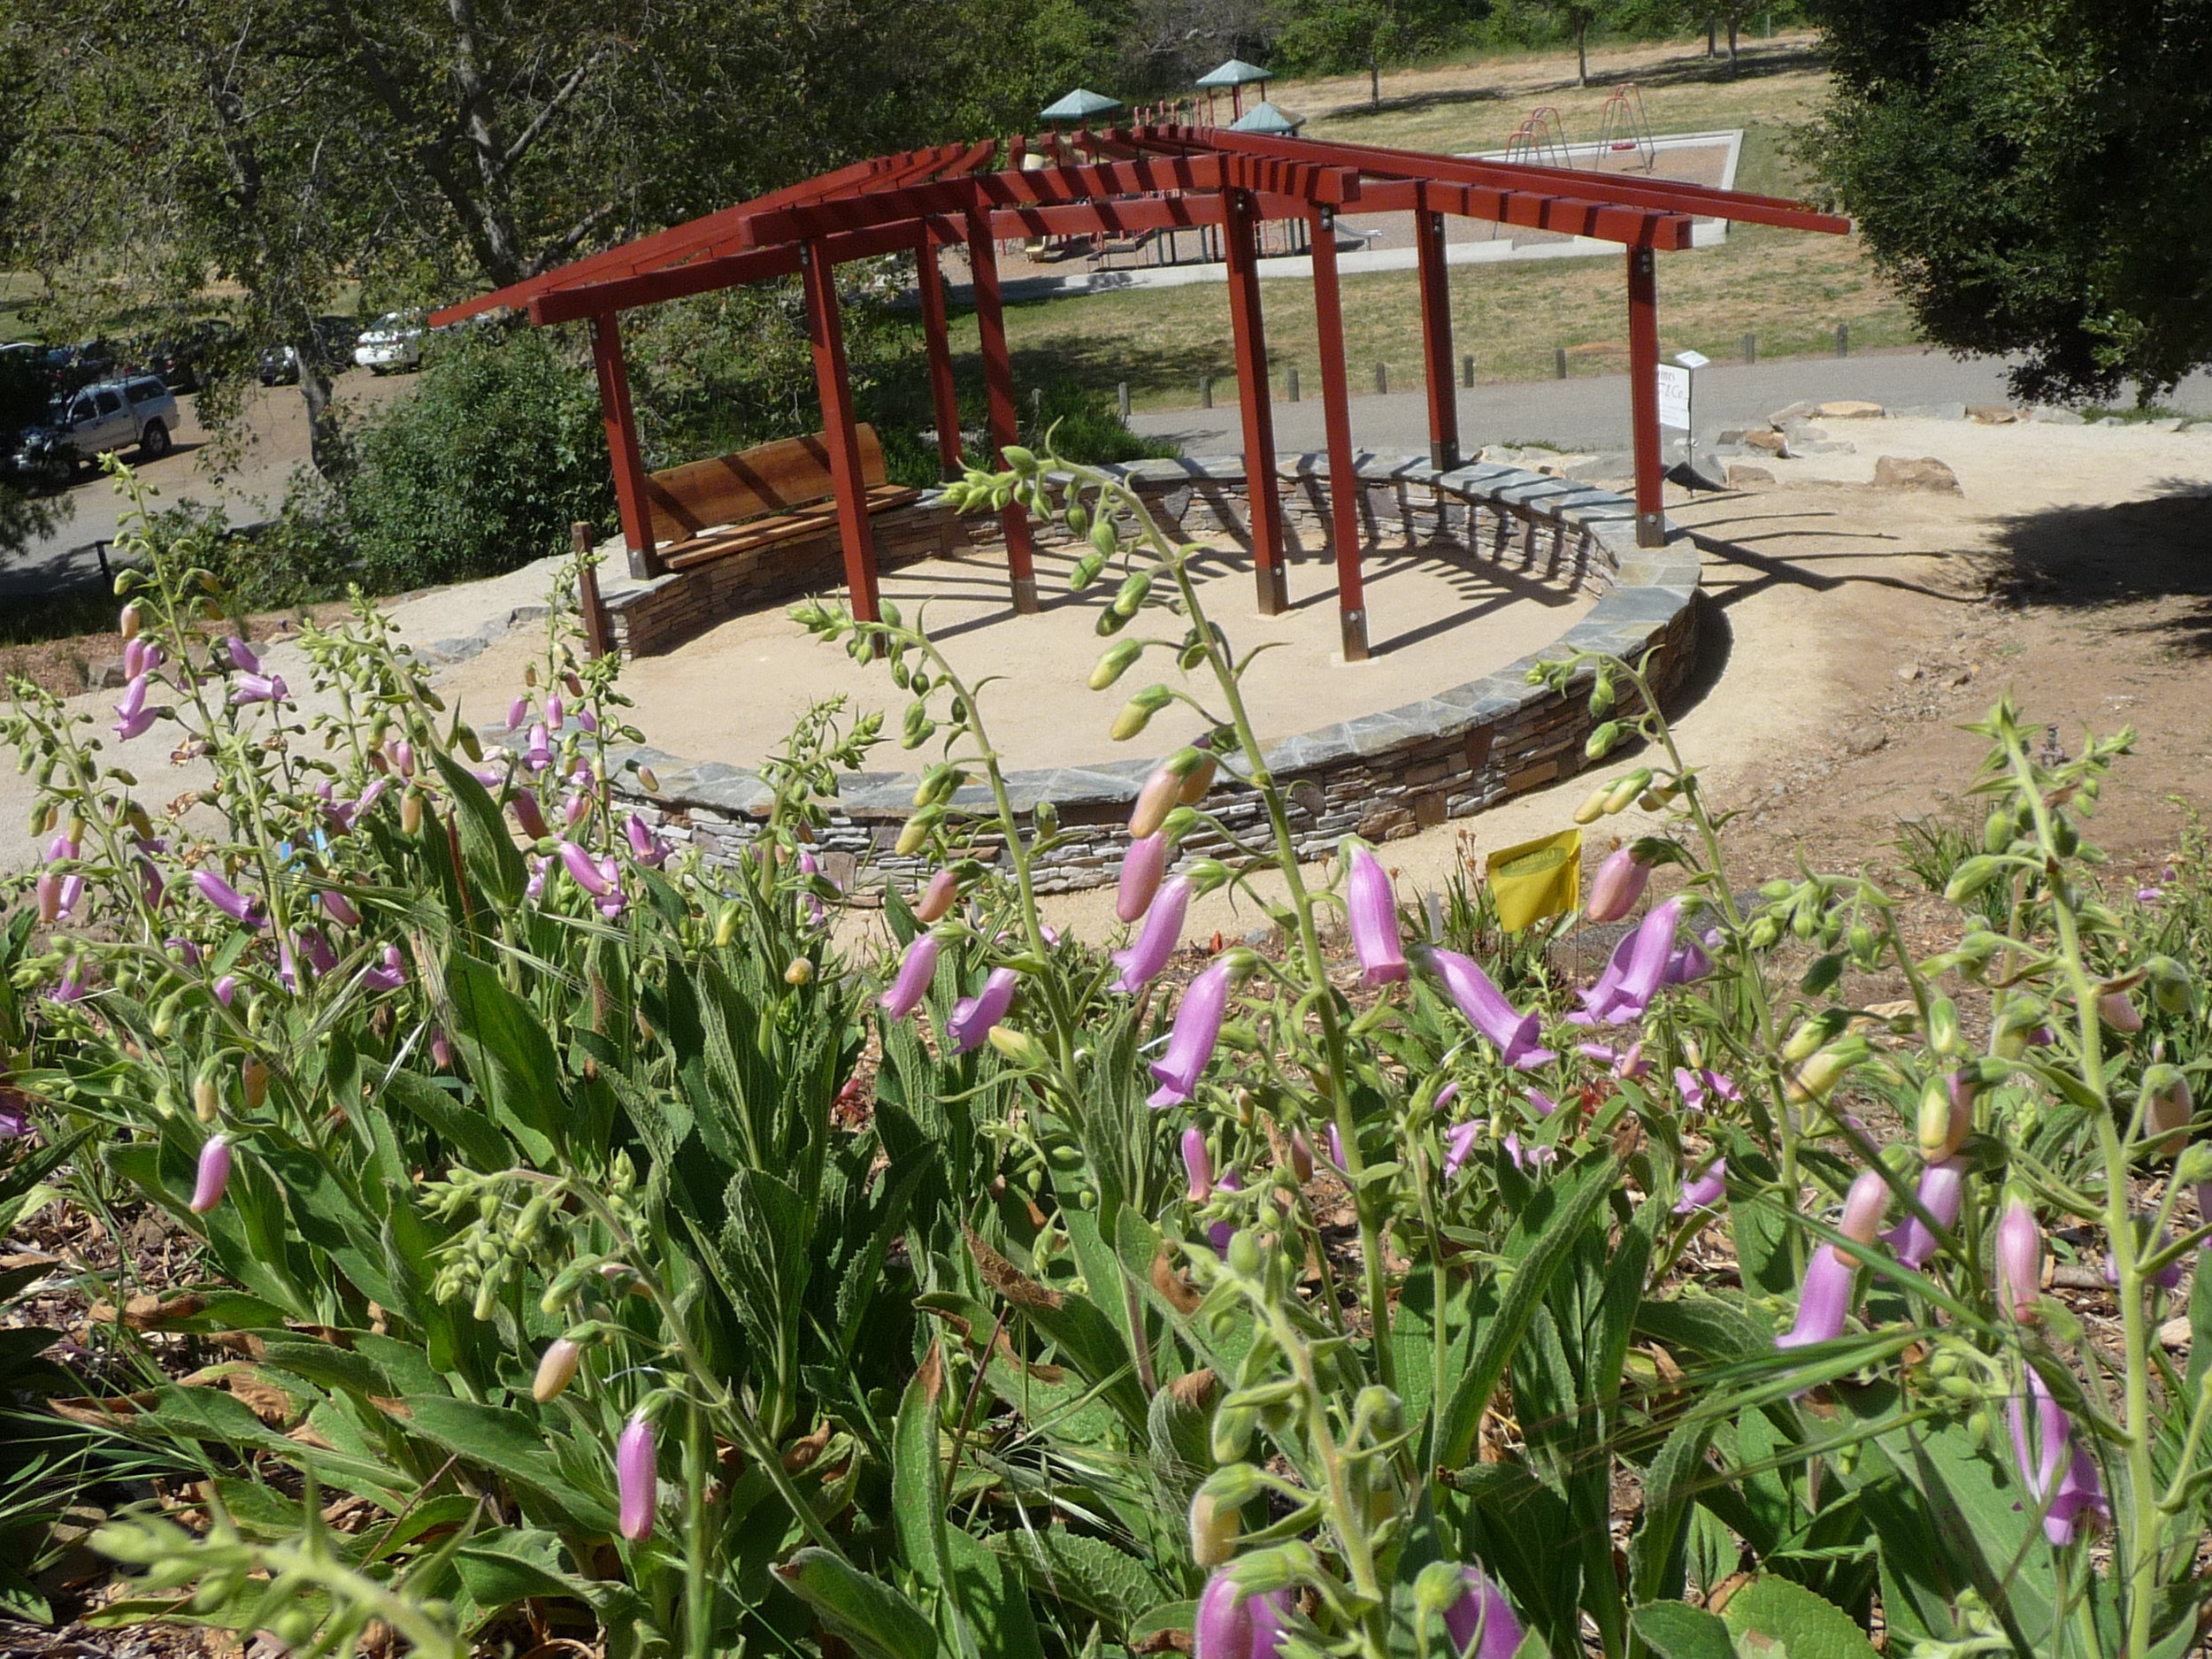 Fire Safe Demonstation Garden  Brochure ( Print ) ( Mobile )  The Fire Safe Garden, situated on a 1-acre hillside located between the existing Oak Glen Pavilion and Display Garden, provides a working model of landscape design principles aimed specifically at protecting property from the devastating effects of wildfire.